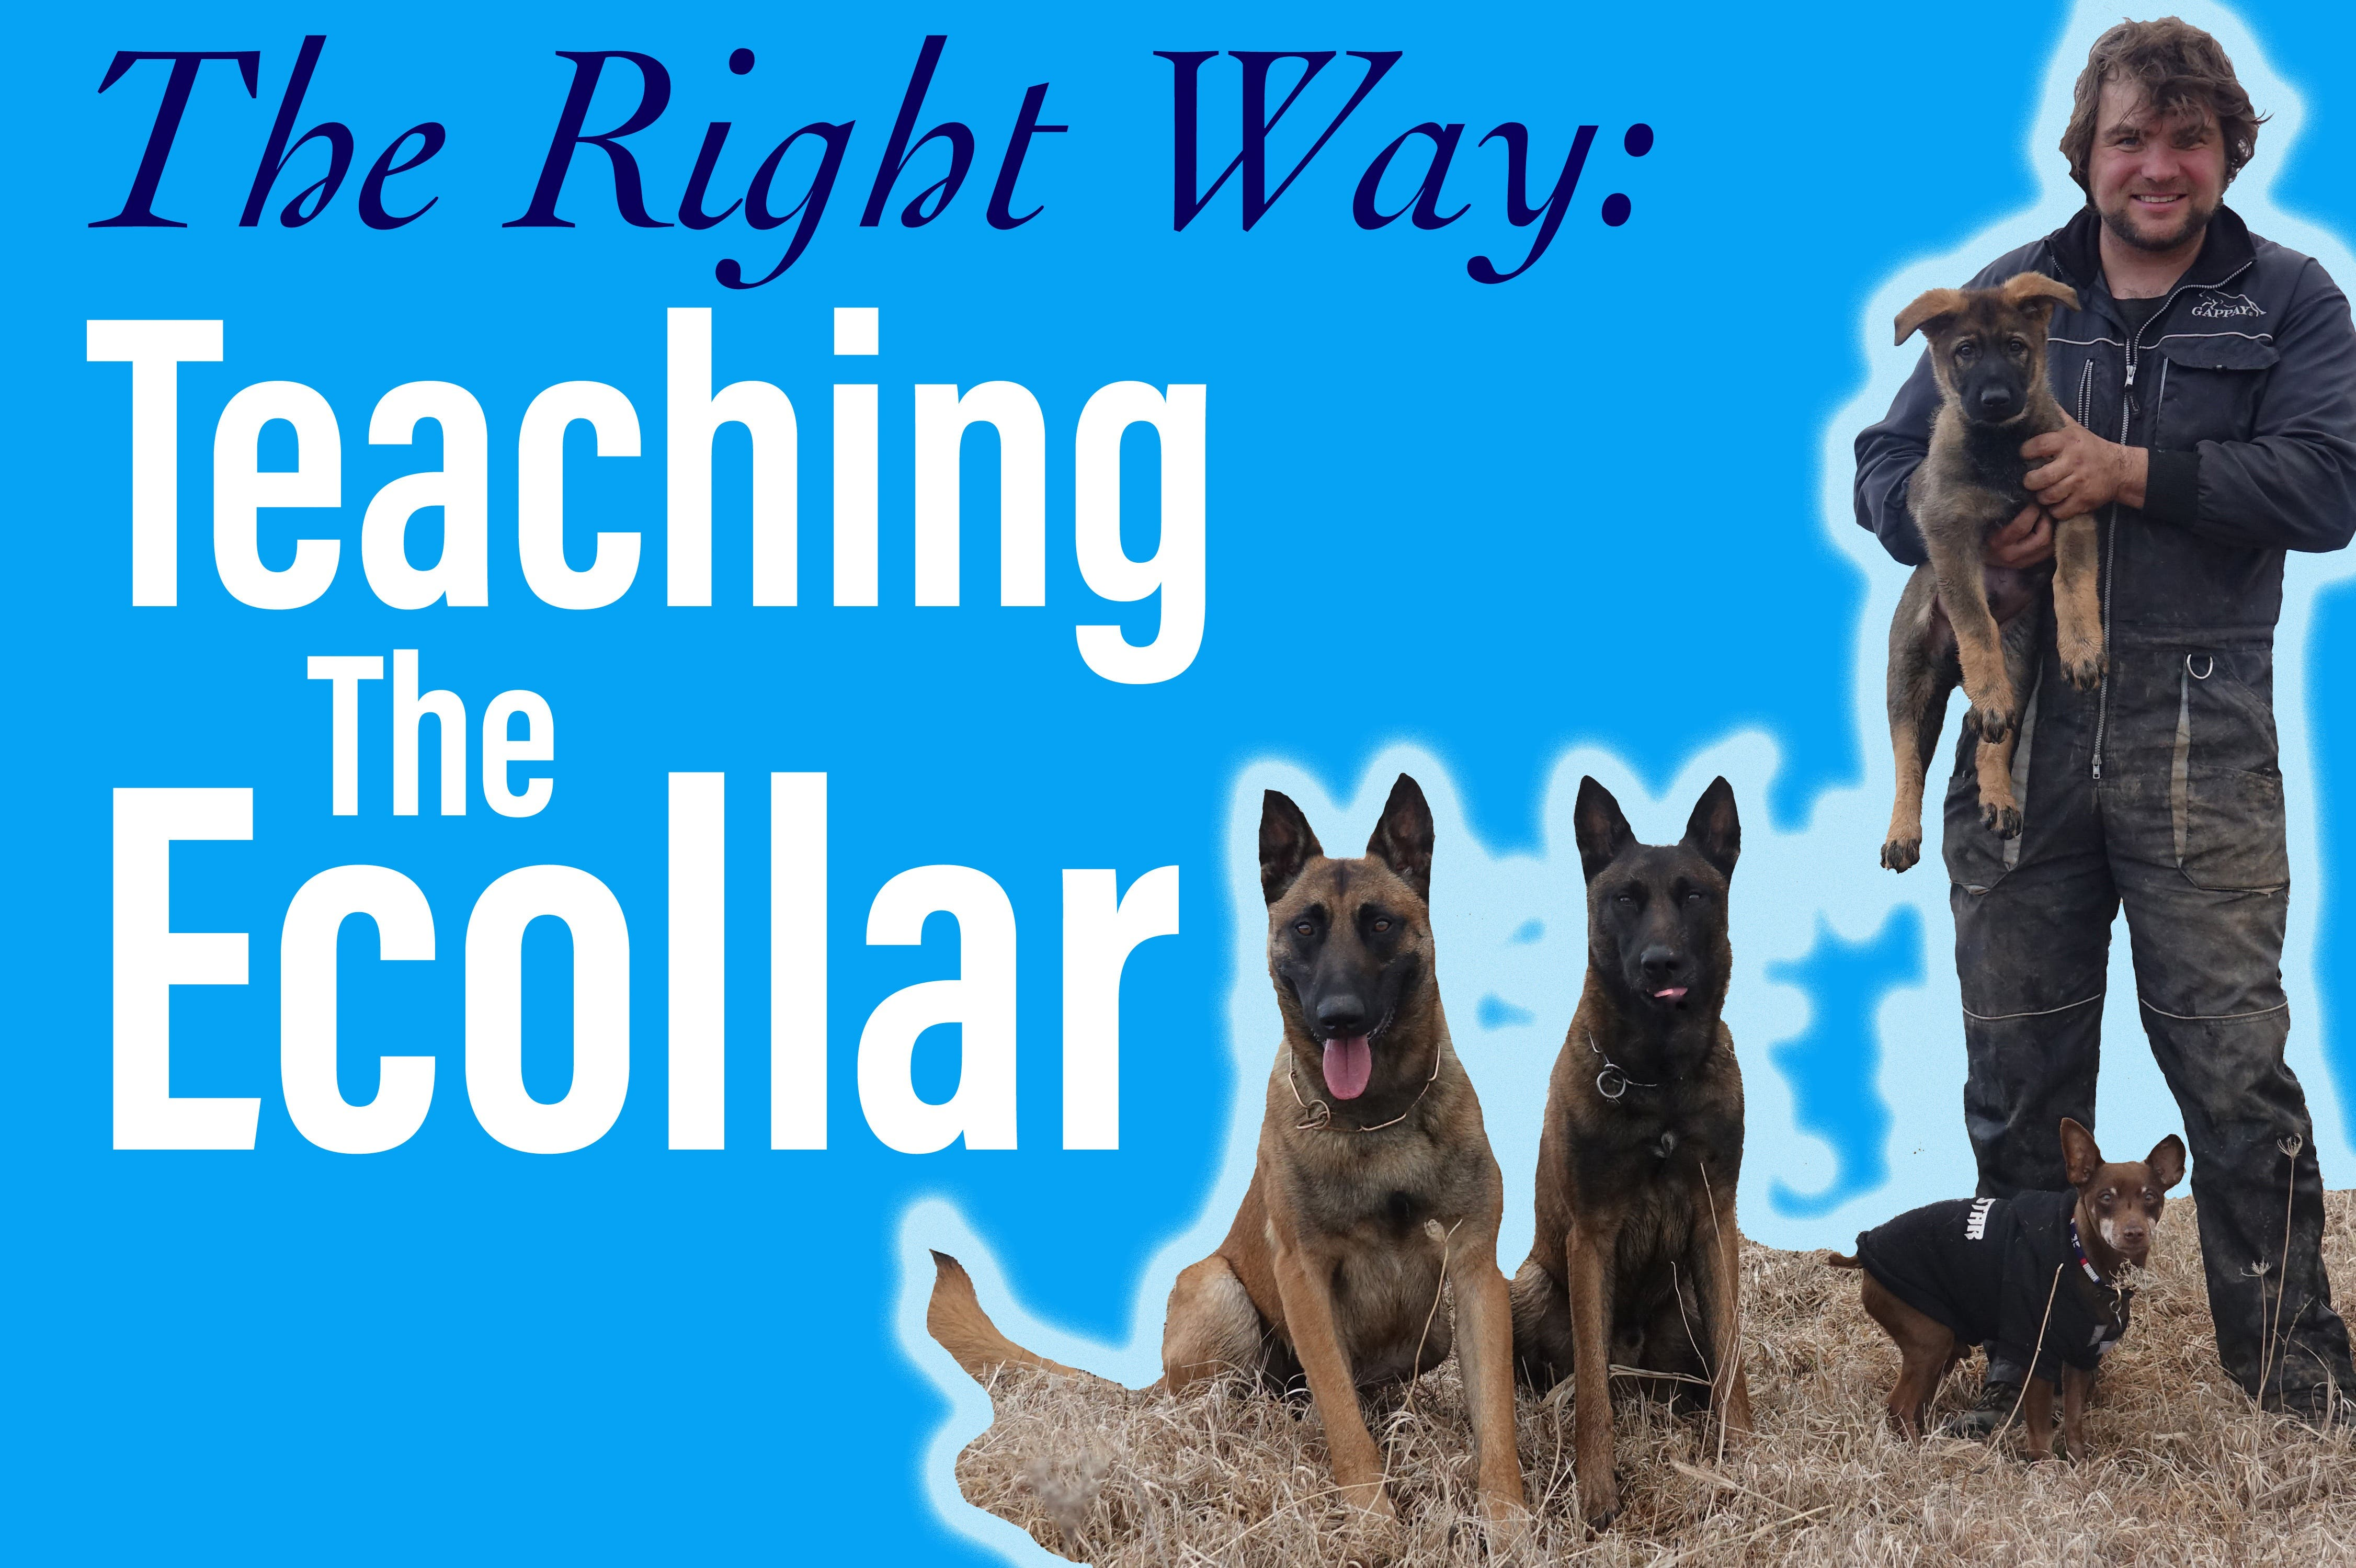 The Right Way: Teaching the Ecollar